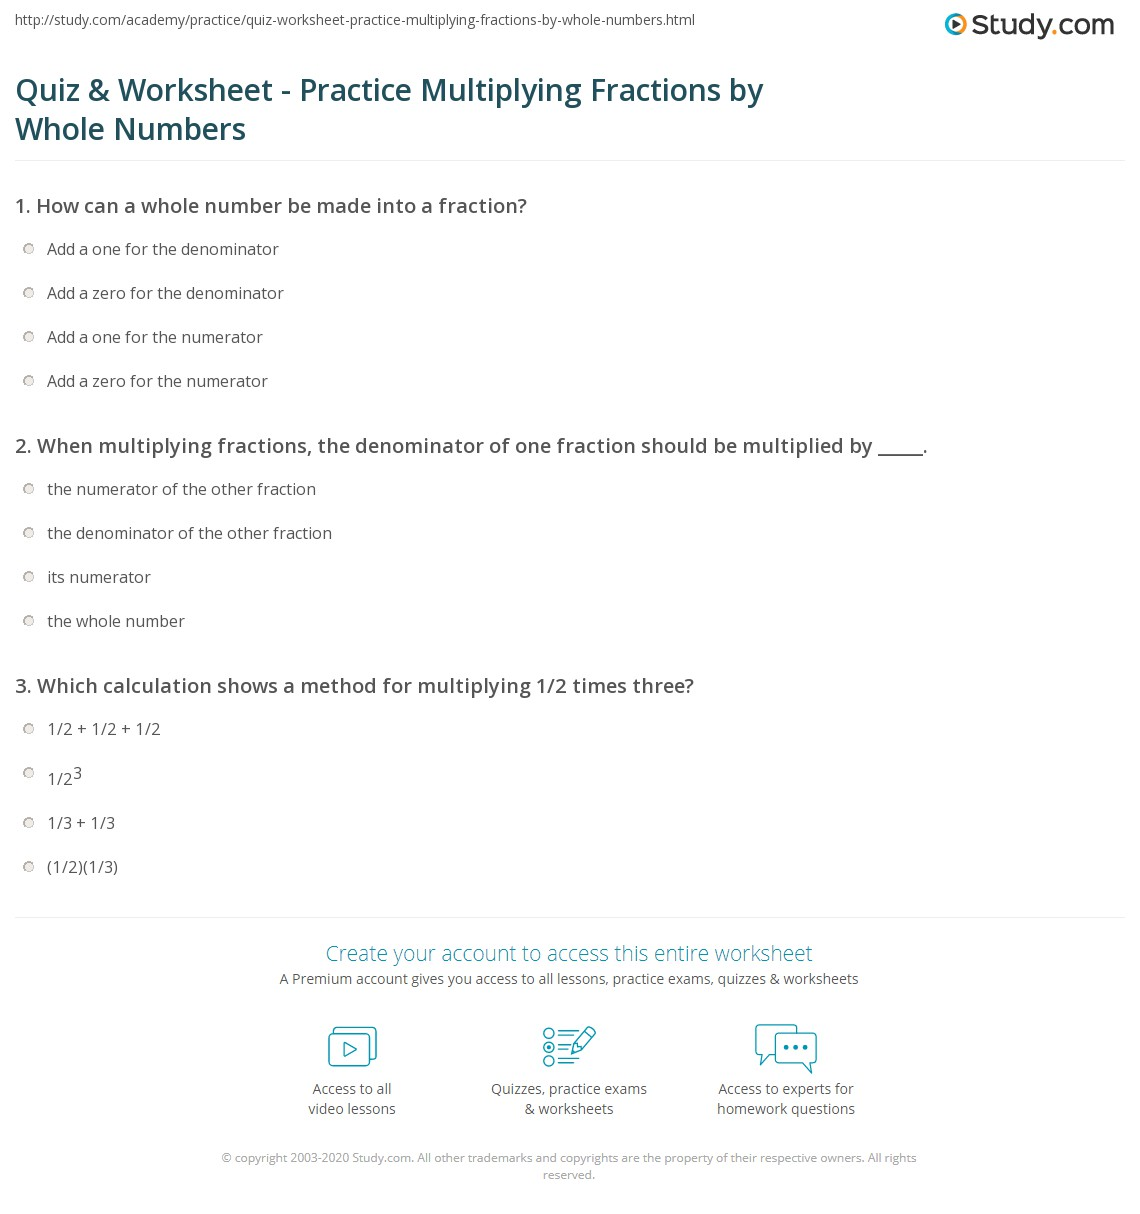 quiz  worksheet  practice multiplying fractions by whole numbers  when multiplying fractions the denominator of one fraction should be  multiplied by